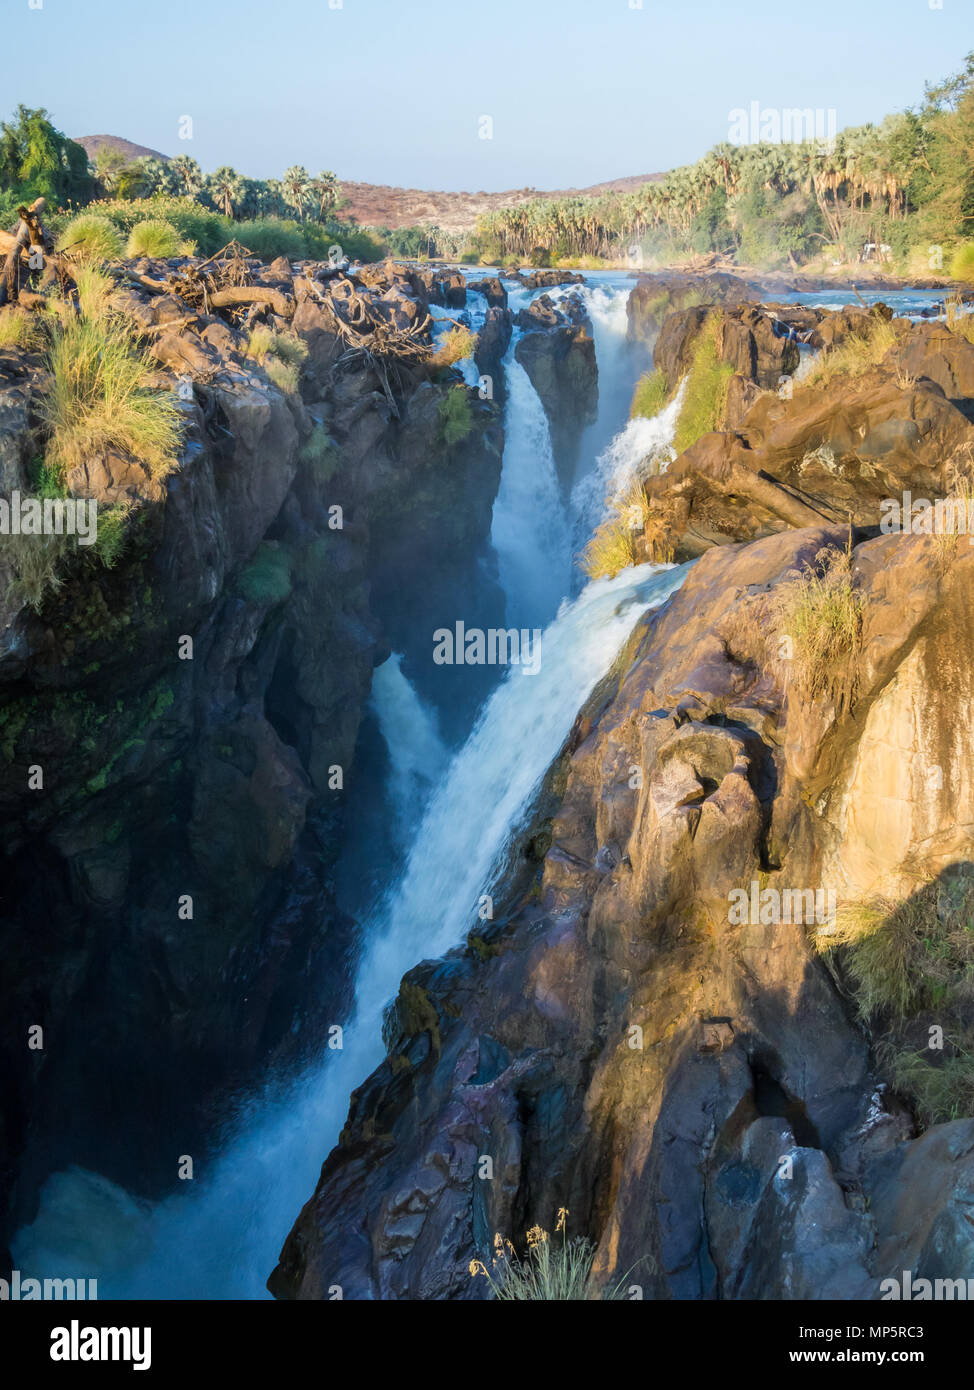 View over beautiful scenic Epupa Falls on Kunene River between Angola and Namibia in evening light, Southern Africa Stock Photo